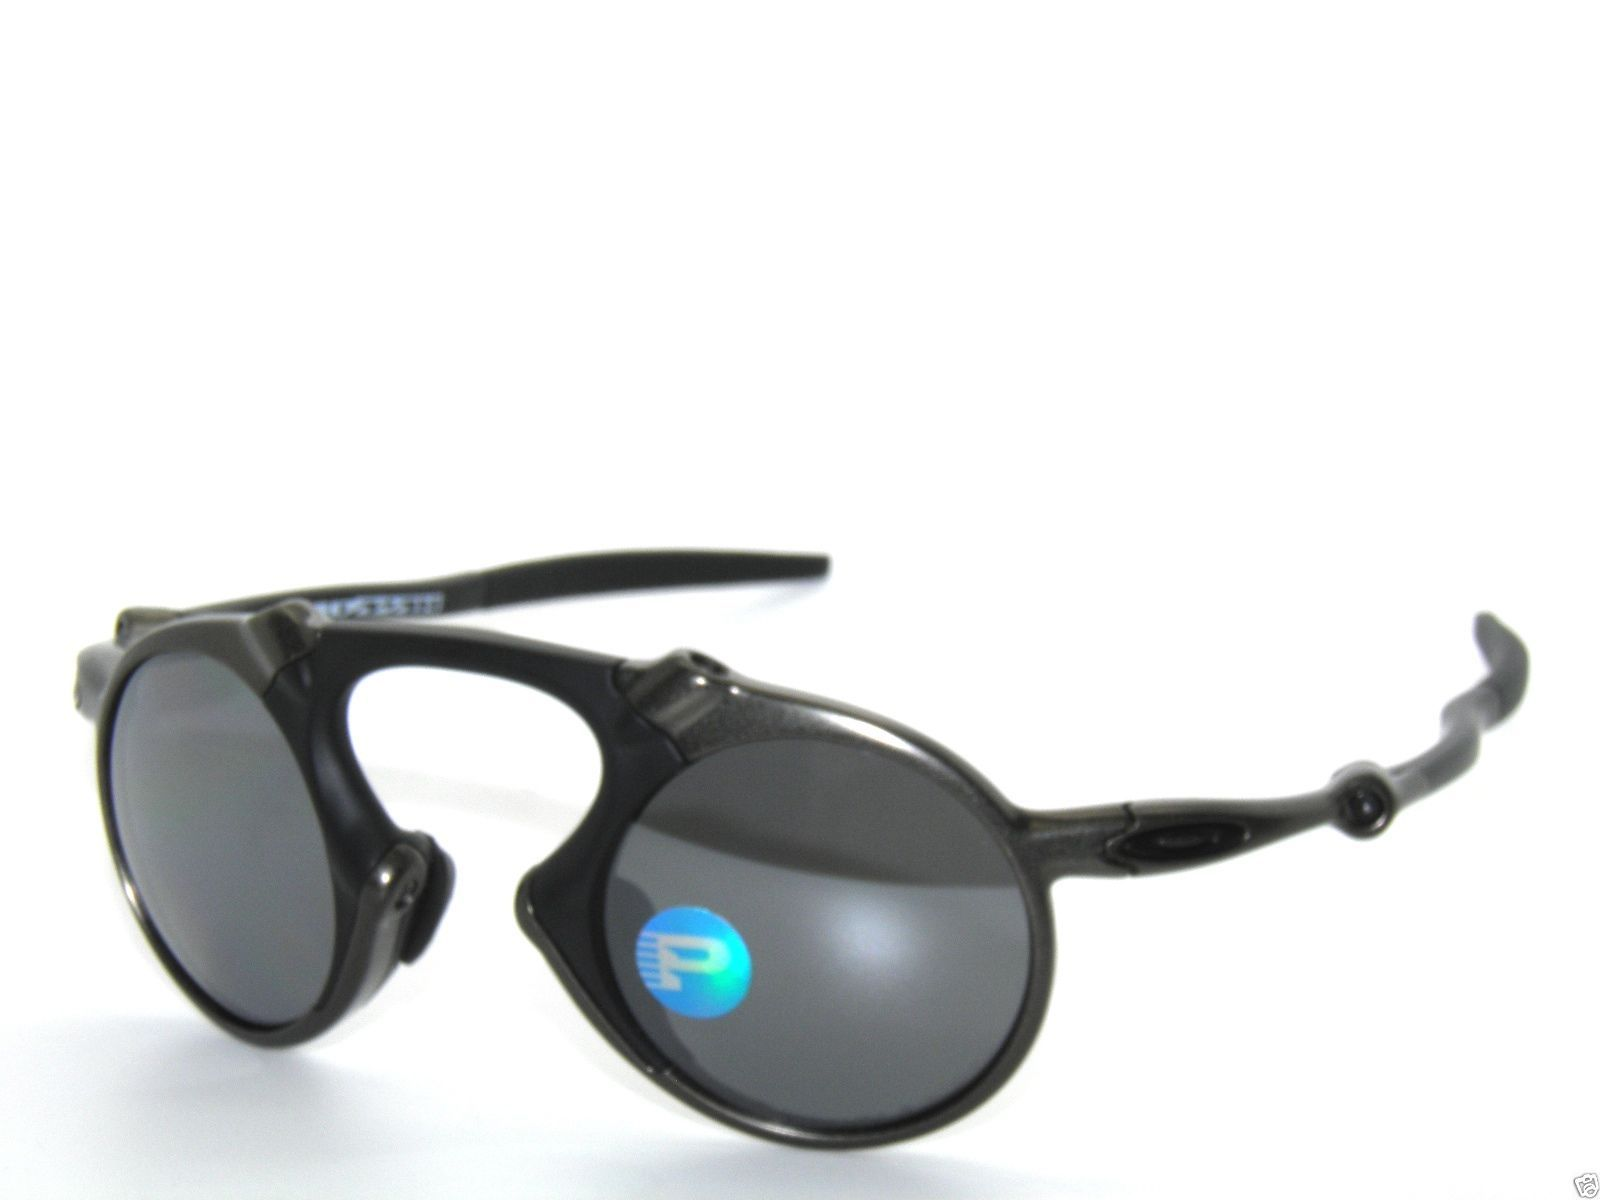 7e56a6245ae CLEARANCE OAKLEY MADMAN 6019-02 PEWTER BLACK IRIDIUM POLARIZED Sunglasses